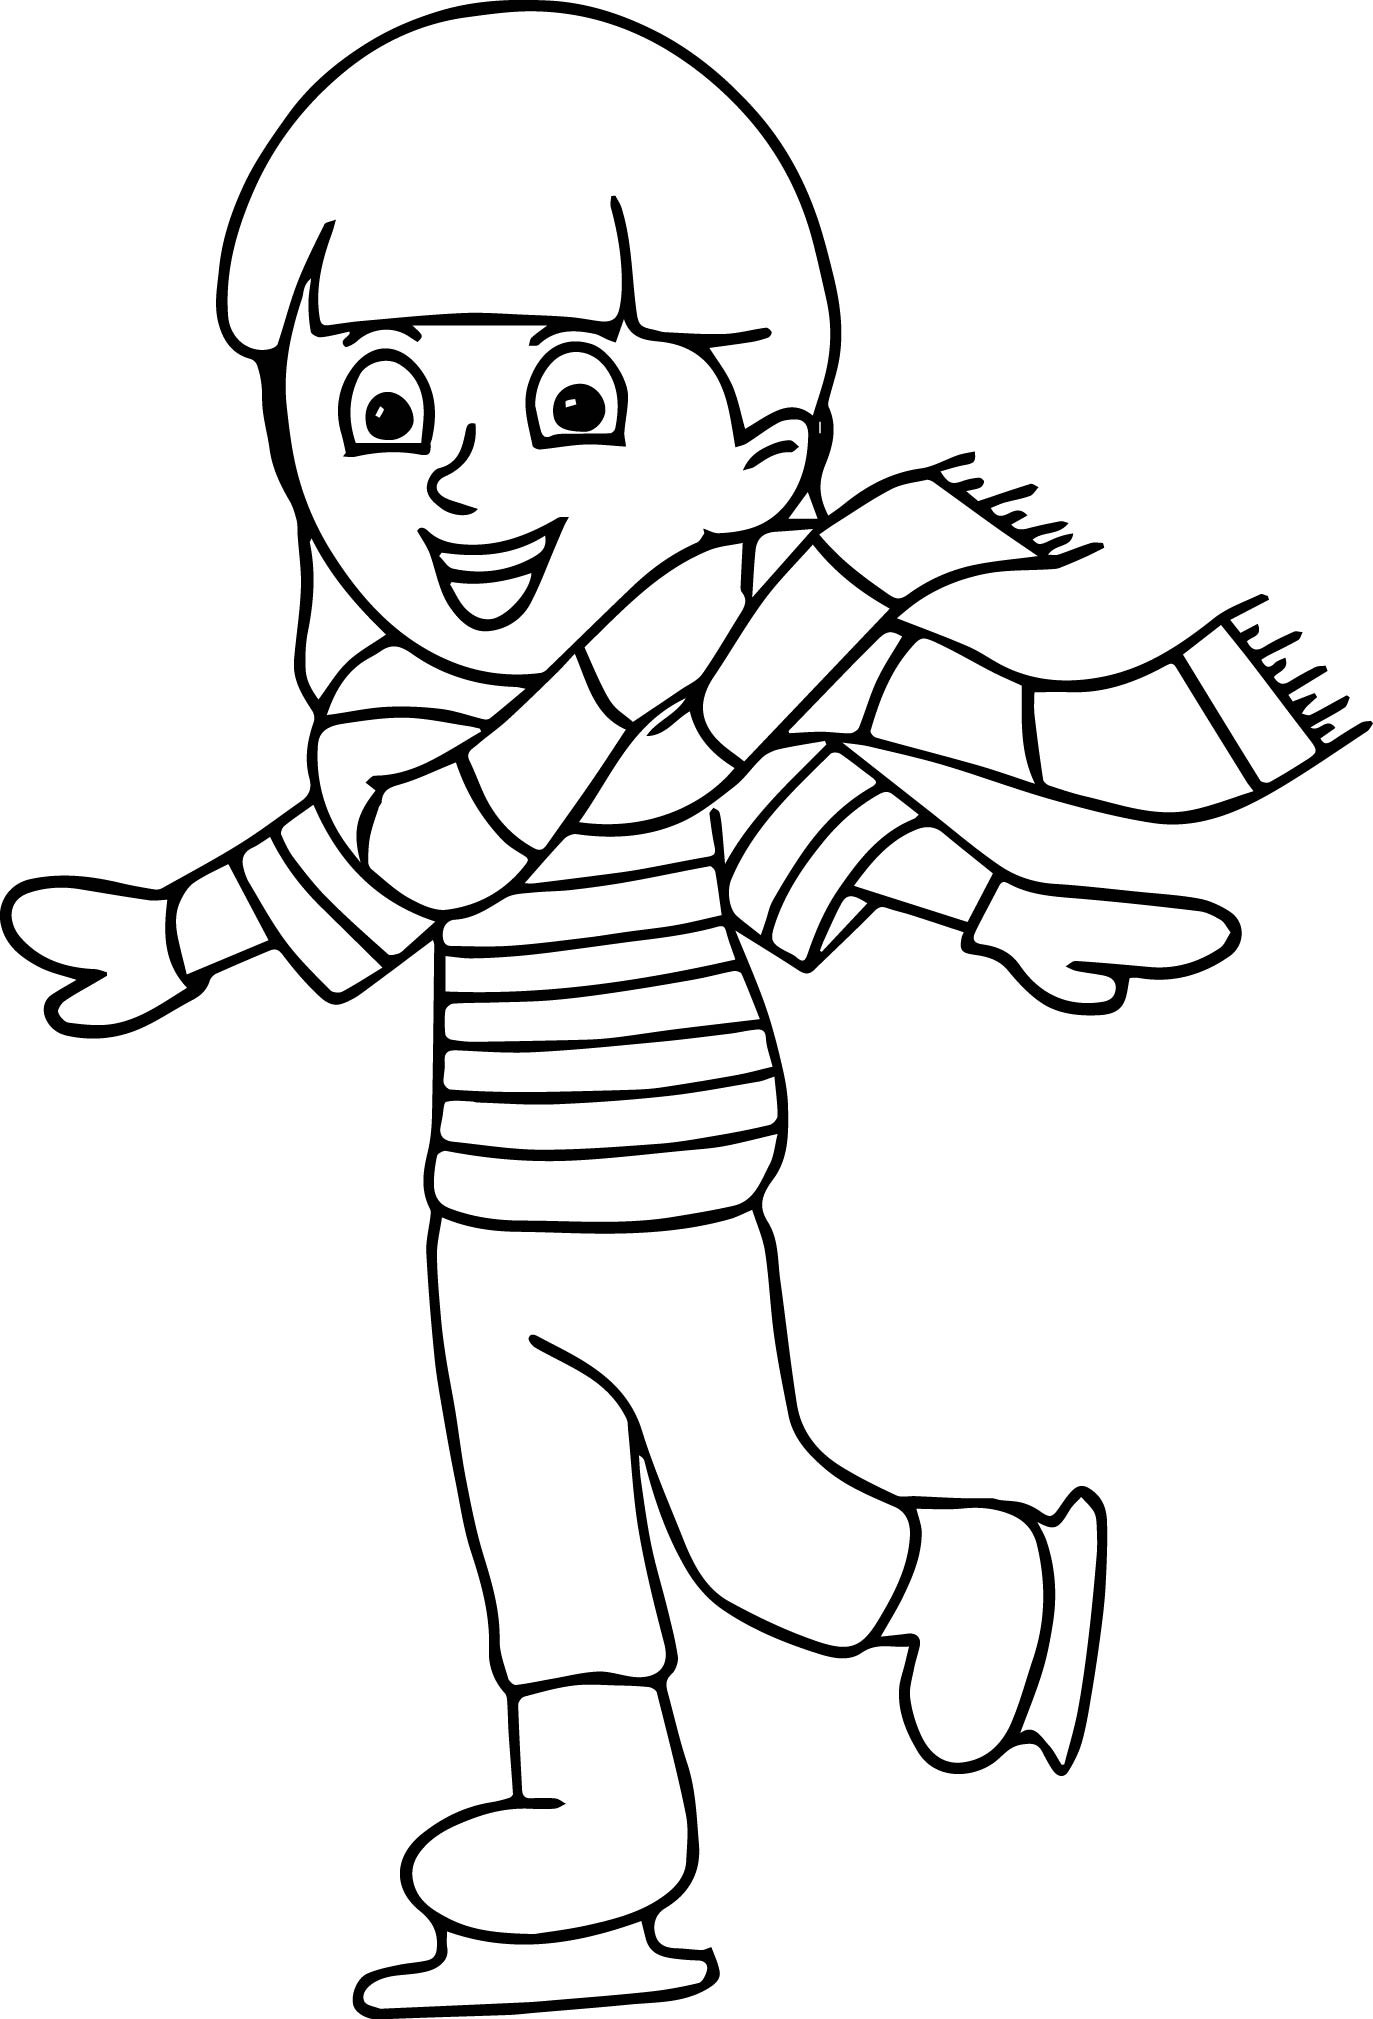 Boys Skating In Winter Coloring Pages  Winter Sport Ice Skating Coloring Page